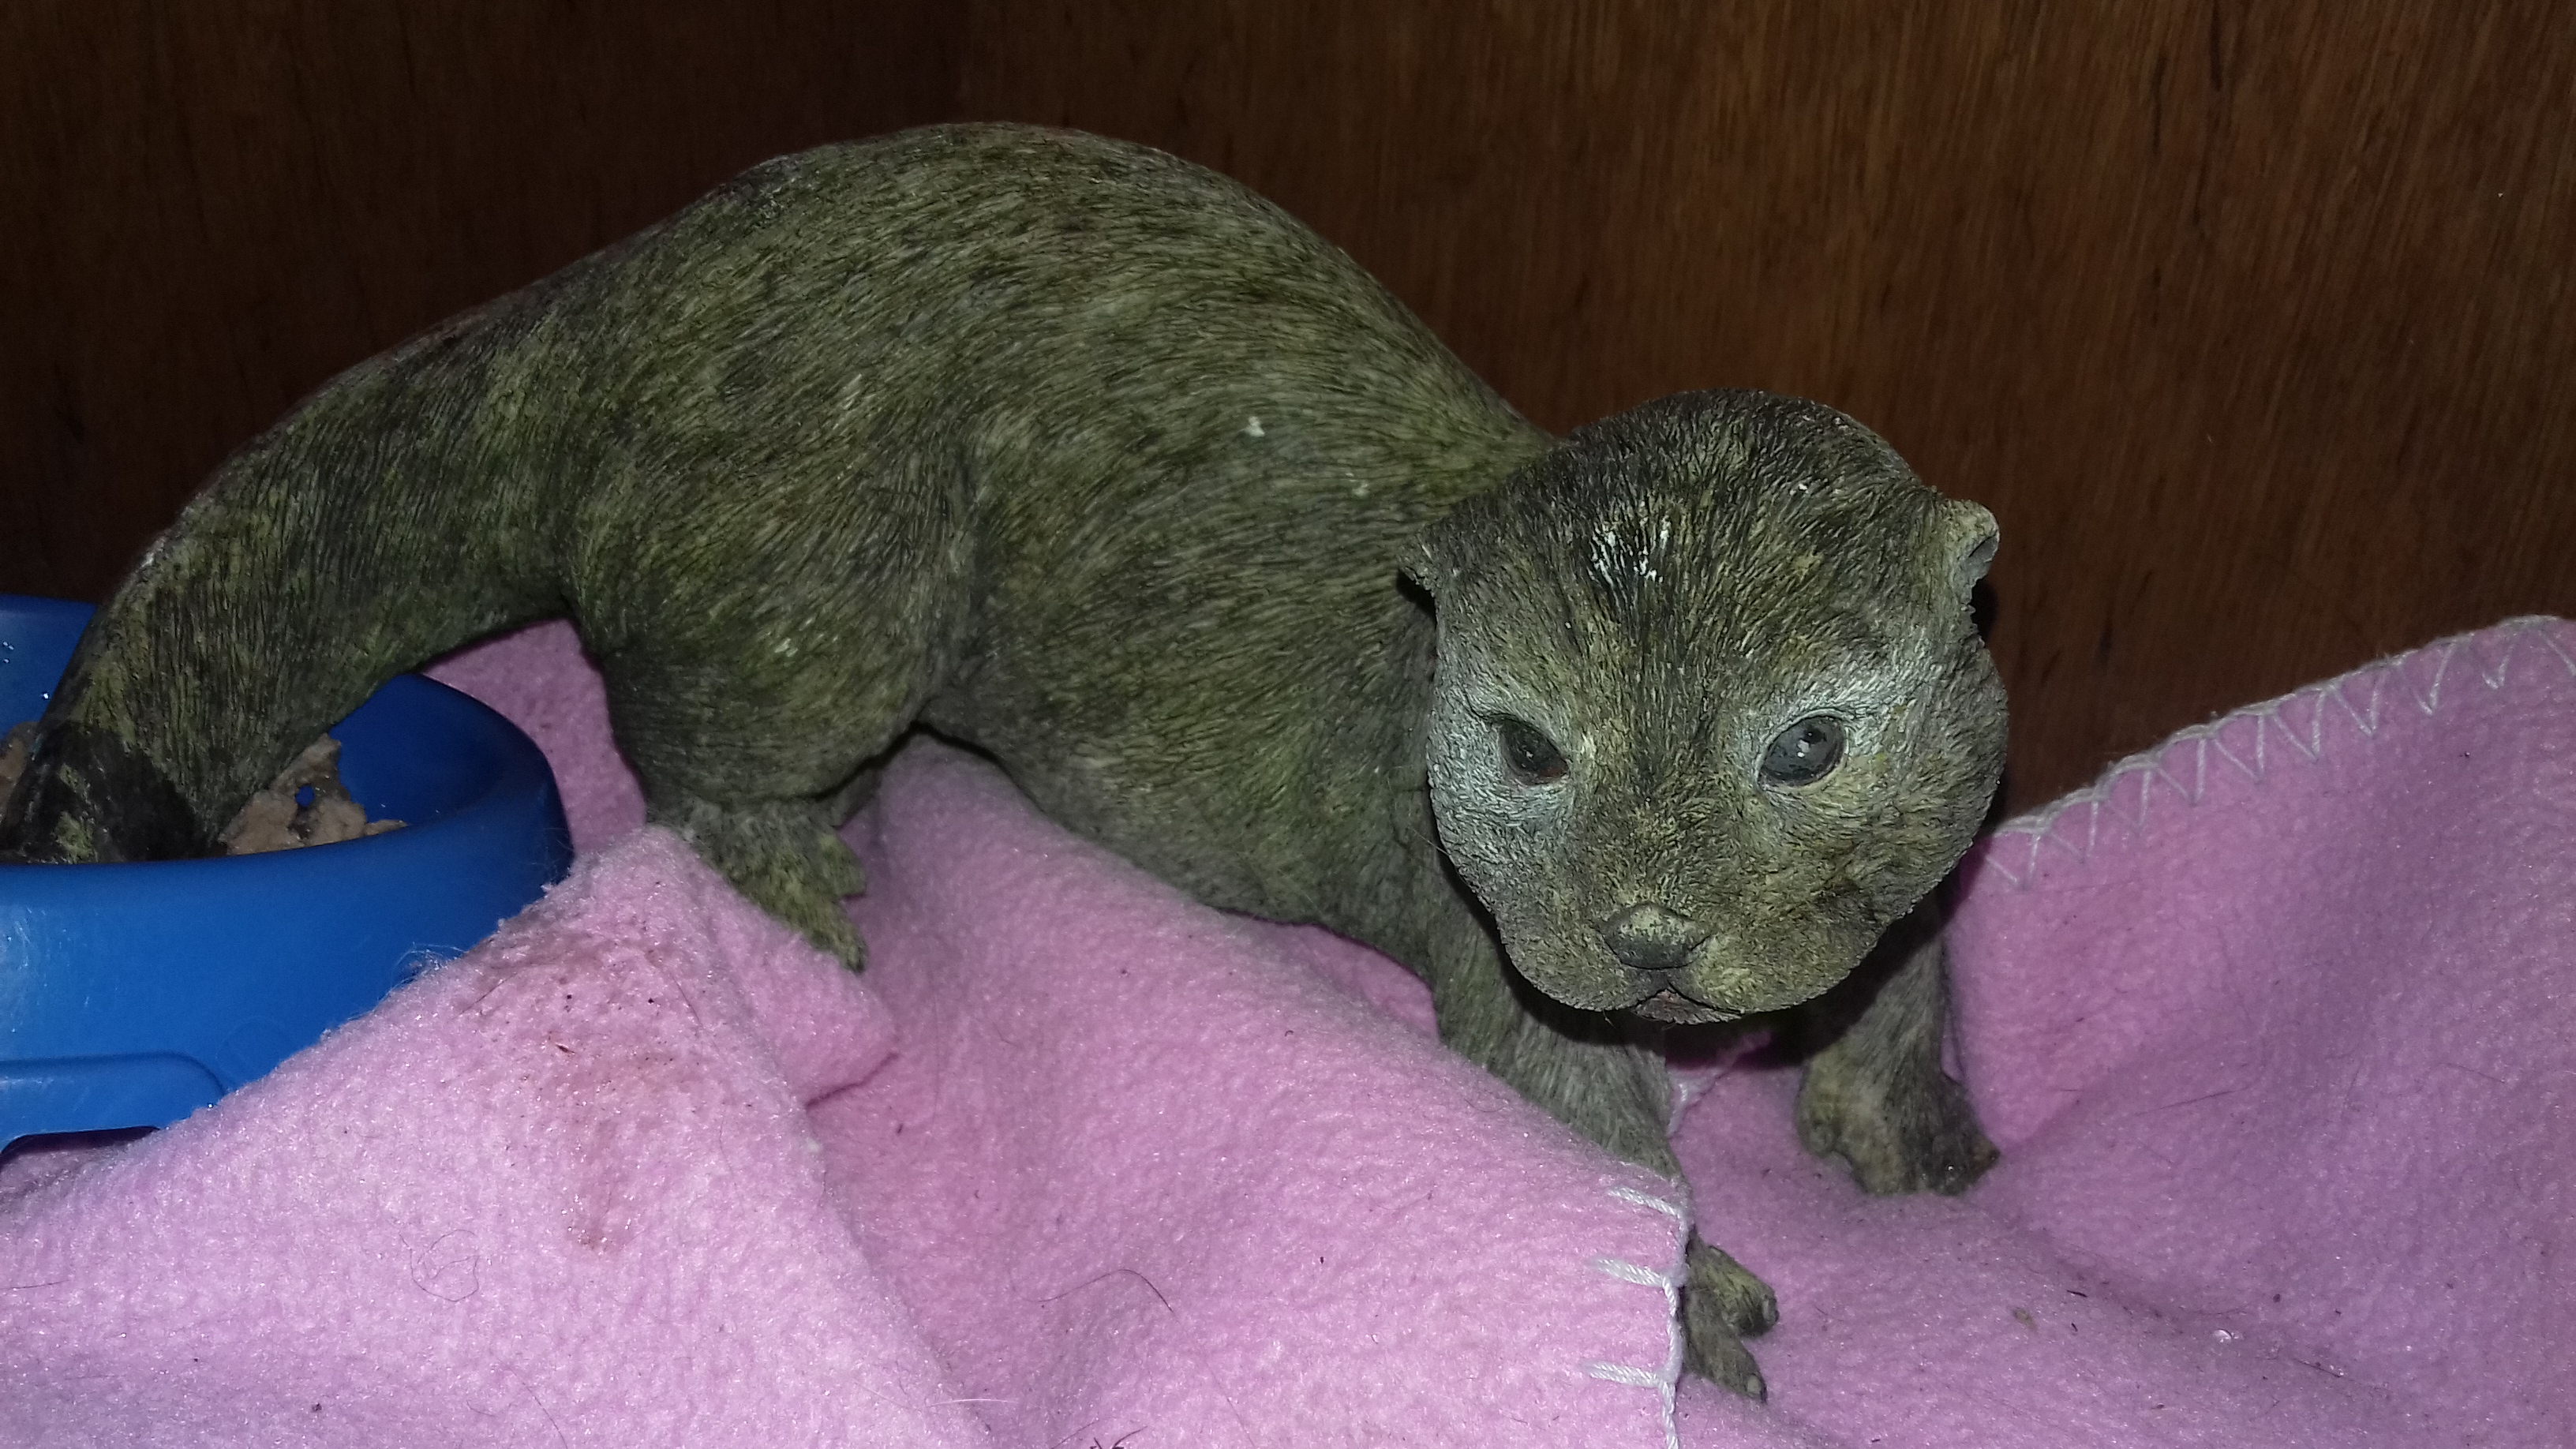 A woman in Aberdeen mistook the ornamental otter for a lizard after finding it in her cat's shelter (Scottish SPCA/PA)